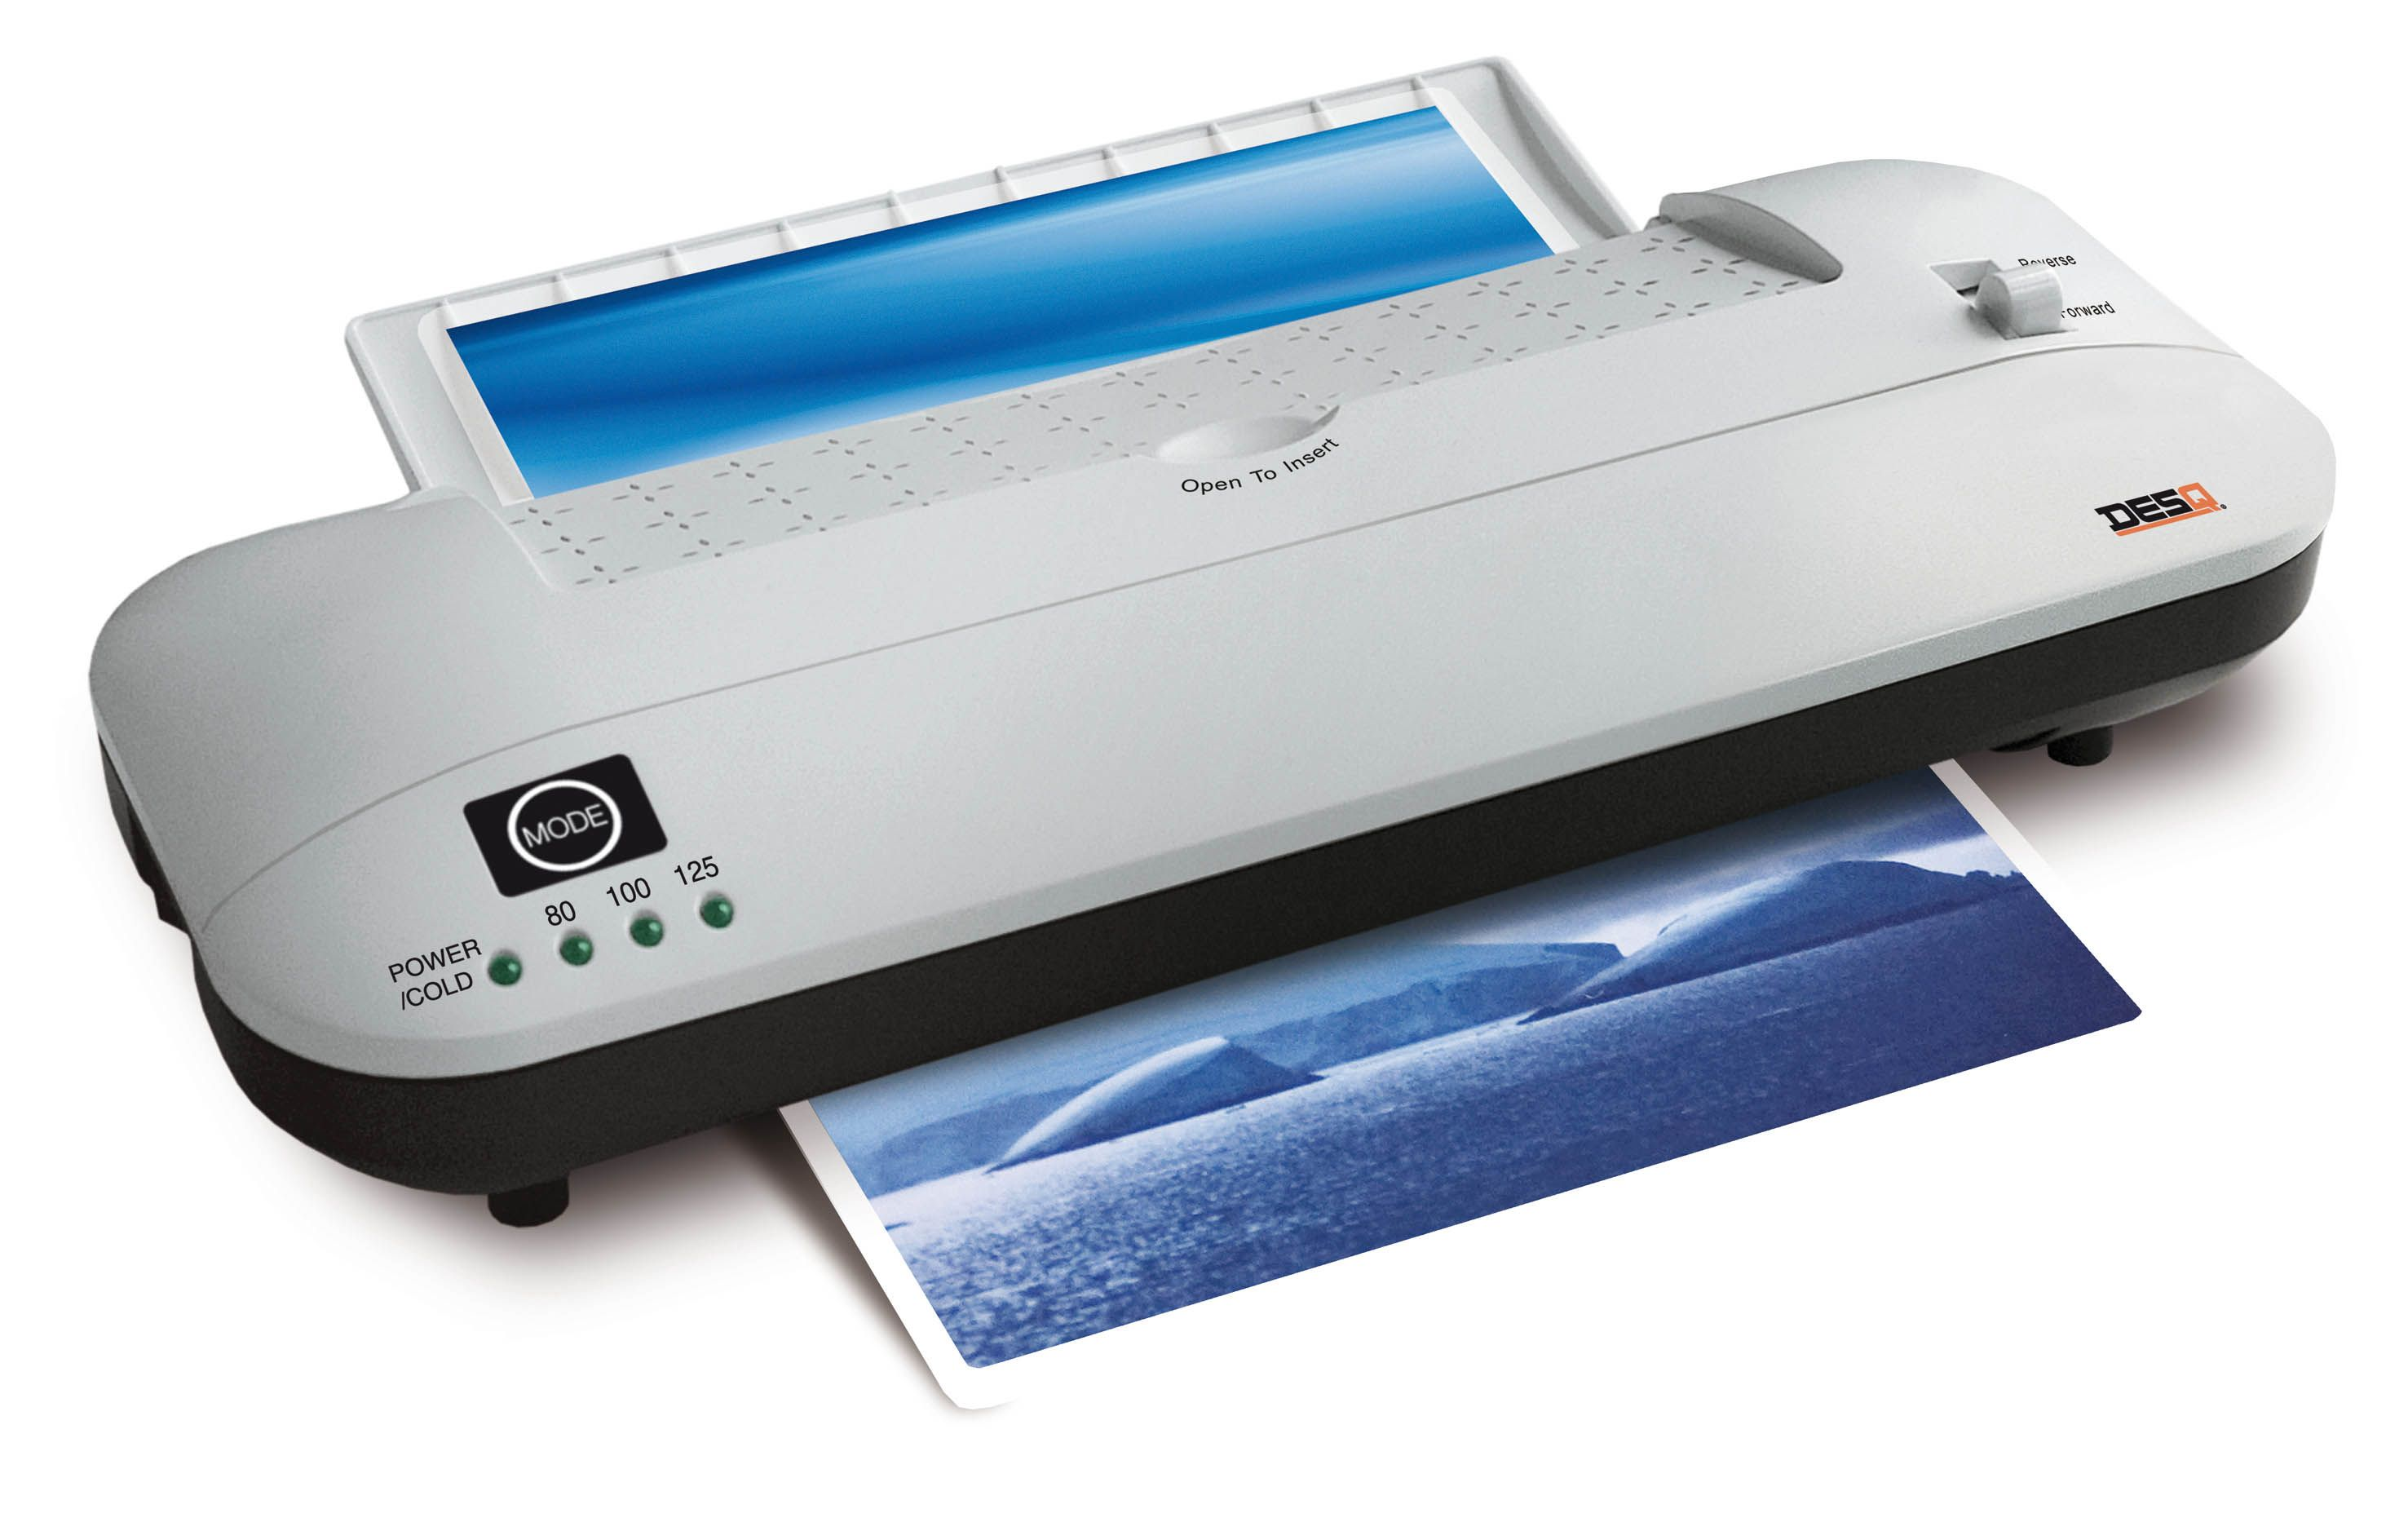 Get Real World Advice On Selecting The Right Printer For Your Business Here Https Srtz Co Perfect Machines Al Laminated Machine Mobile Print Sticker Machine